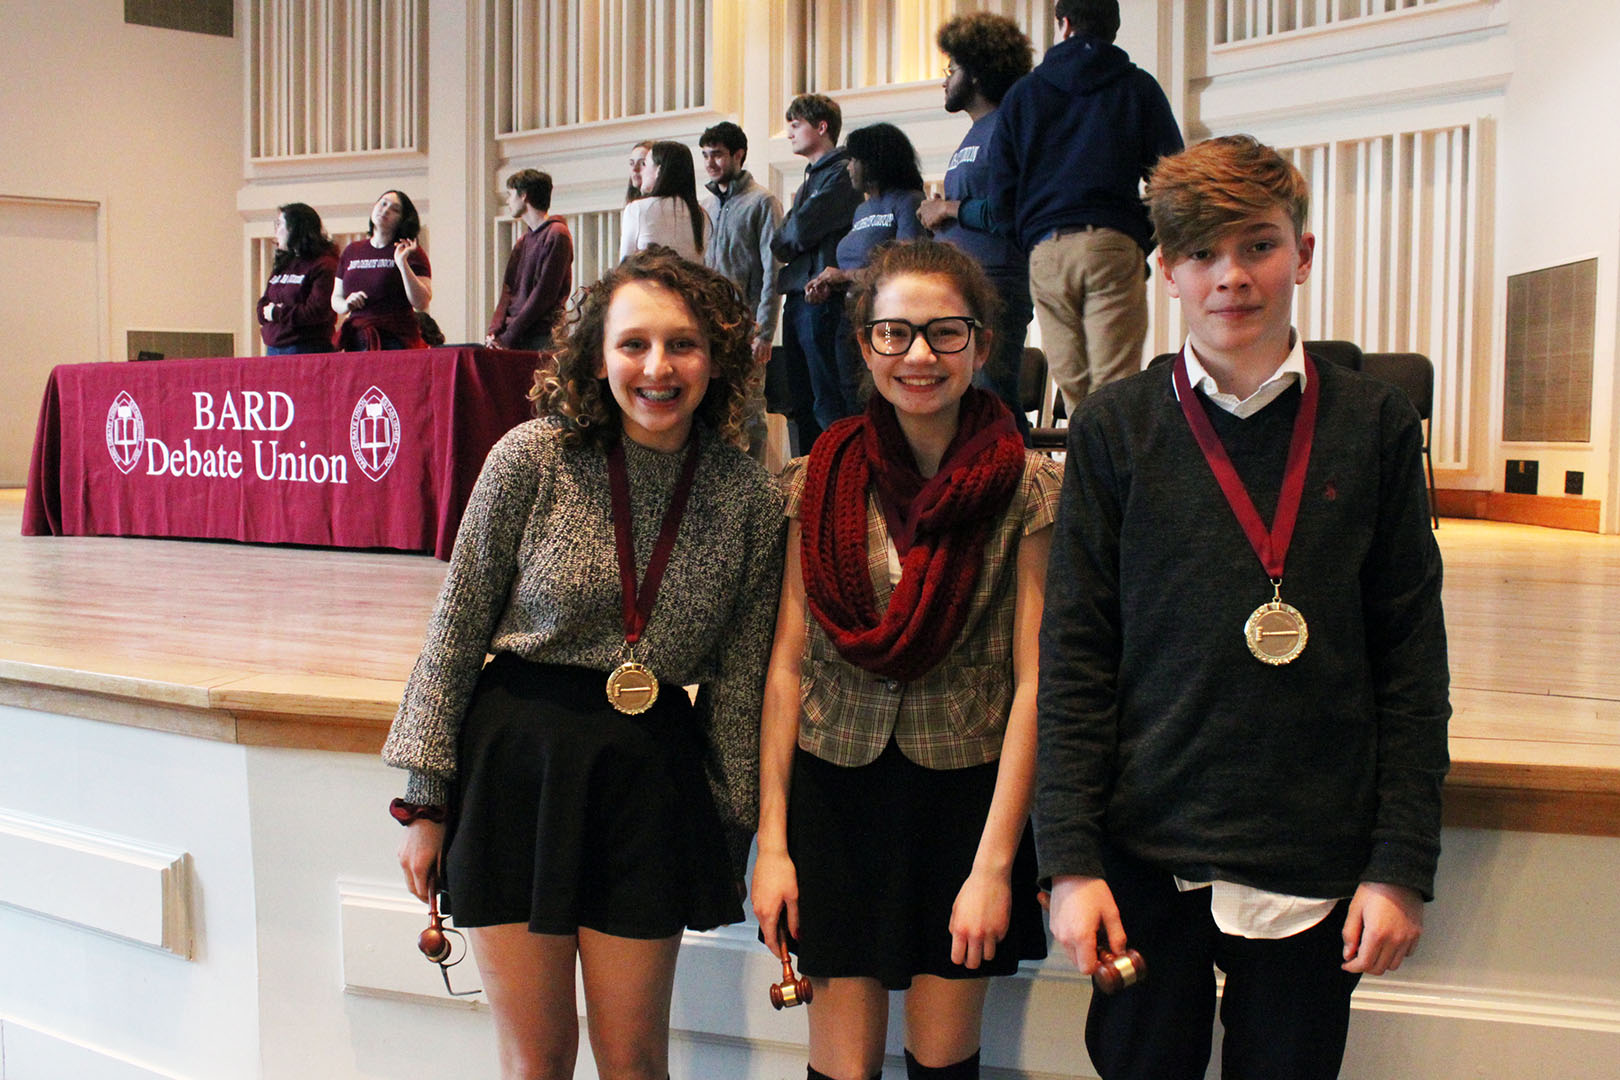 Top competitors at Bard College's Eighth Annual Middle and High School Debate Tournament received medals and gavels at the closing awards ceremony.